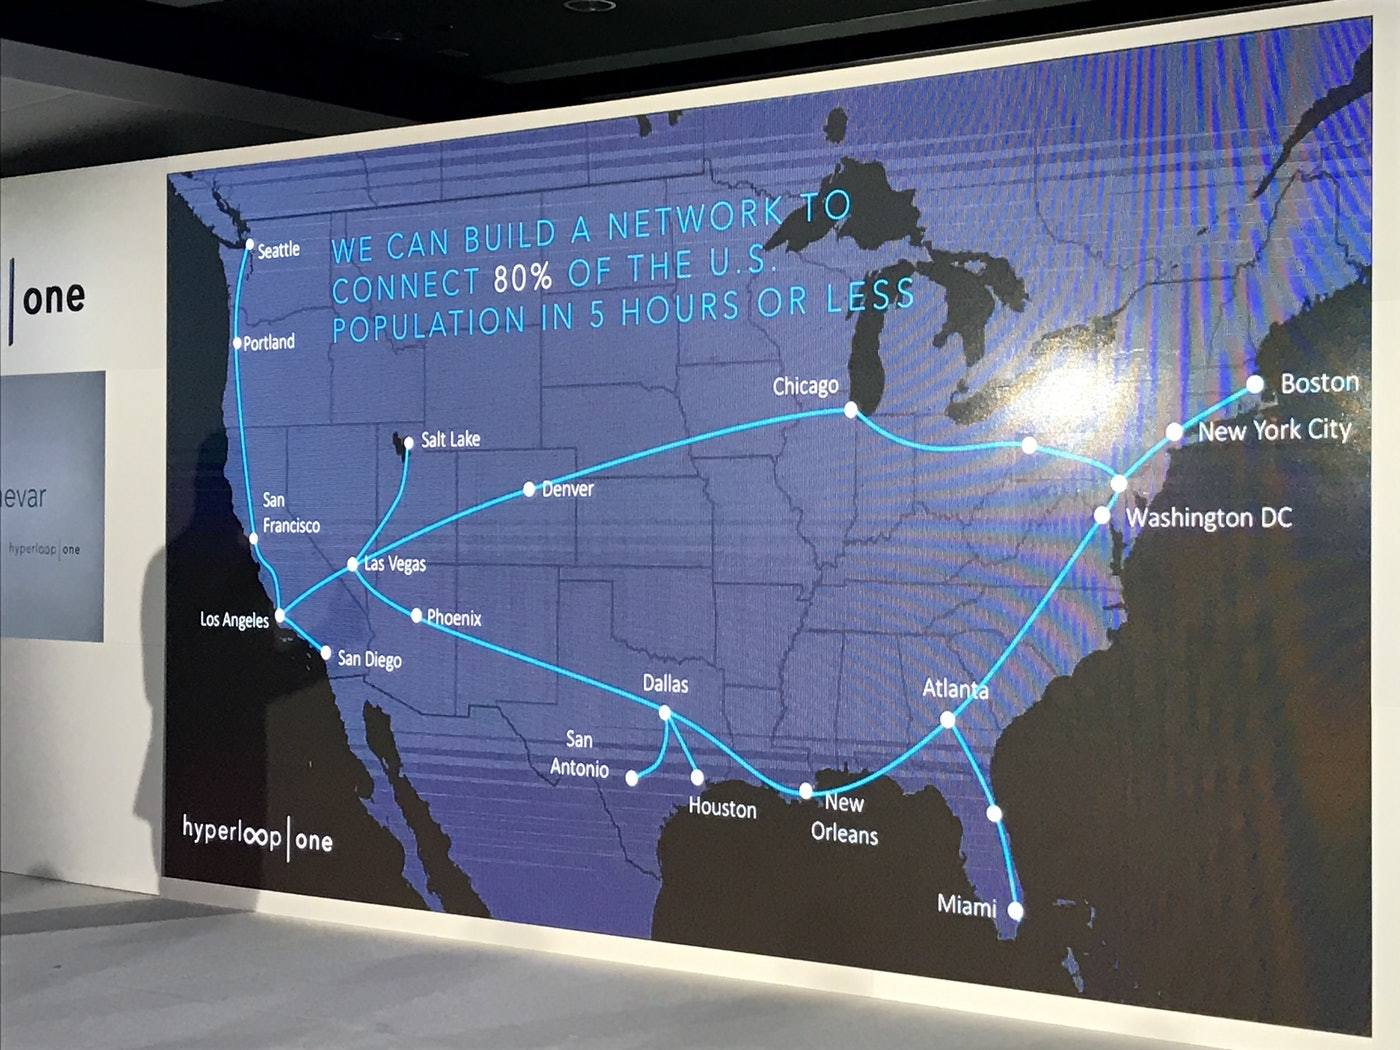 How Realistic Is This Hyperloop One Future Map of the US Inverse